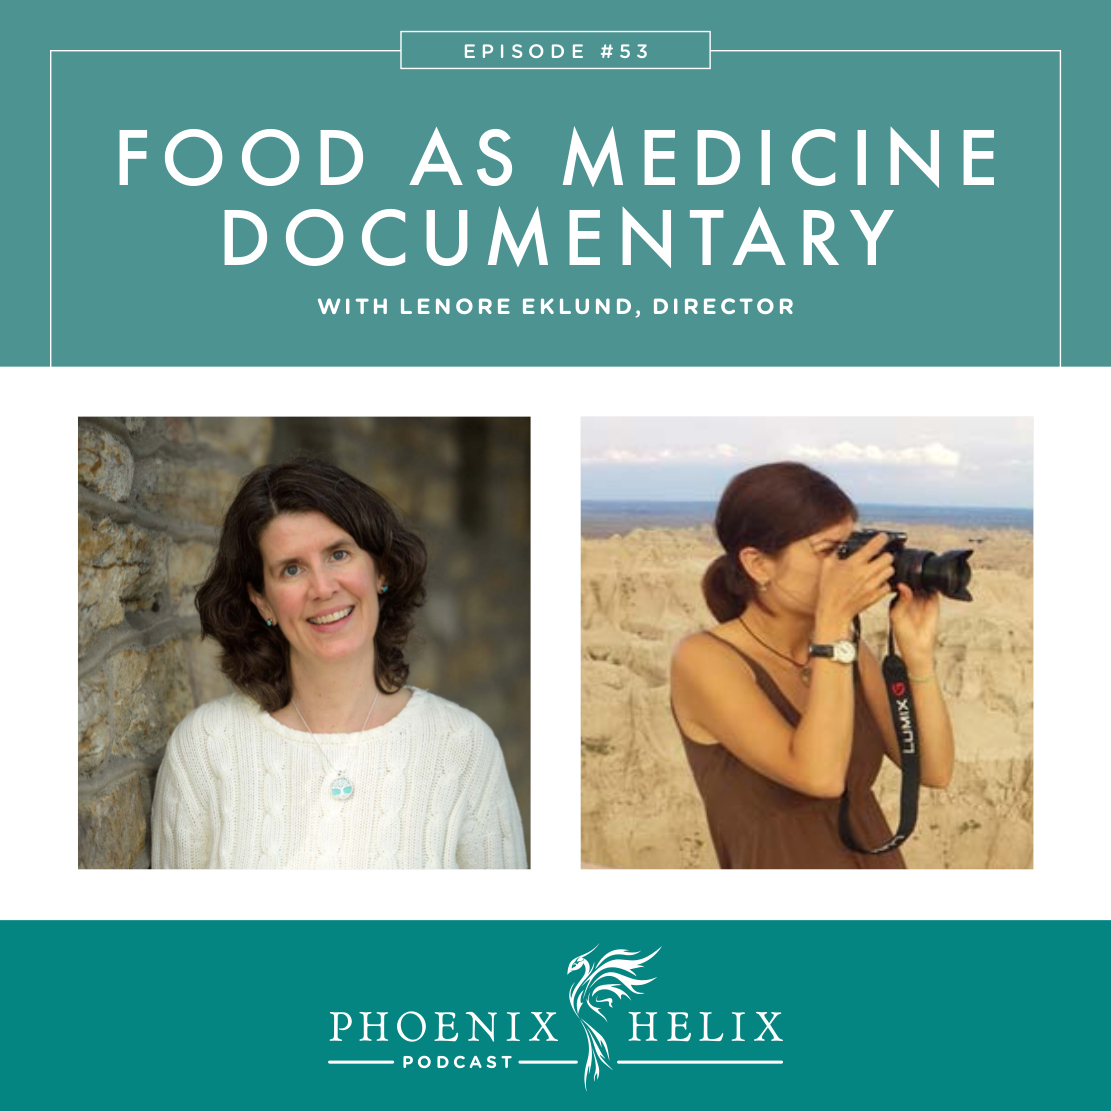 The Food as Medicine Documentary | Phoenix Helix